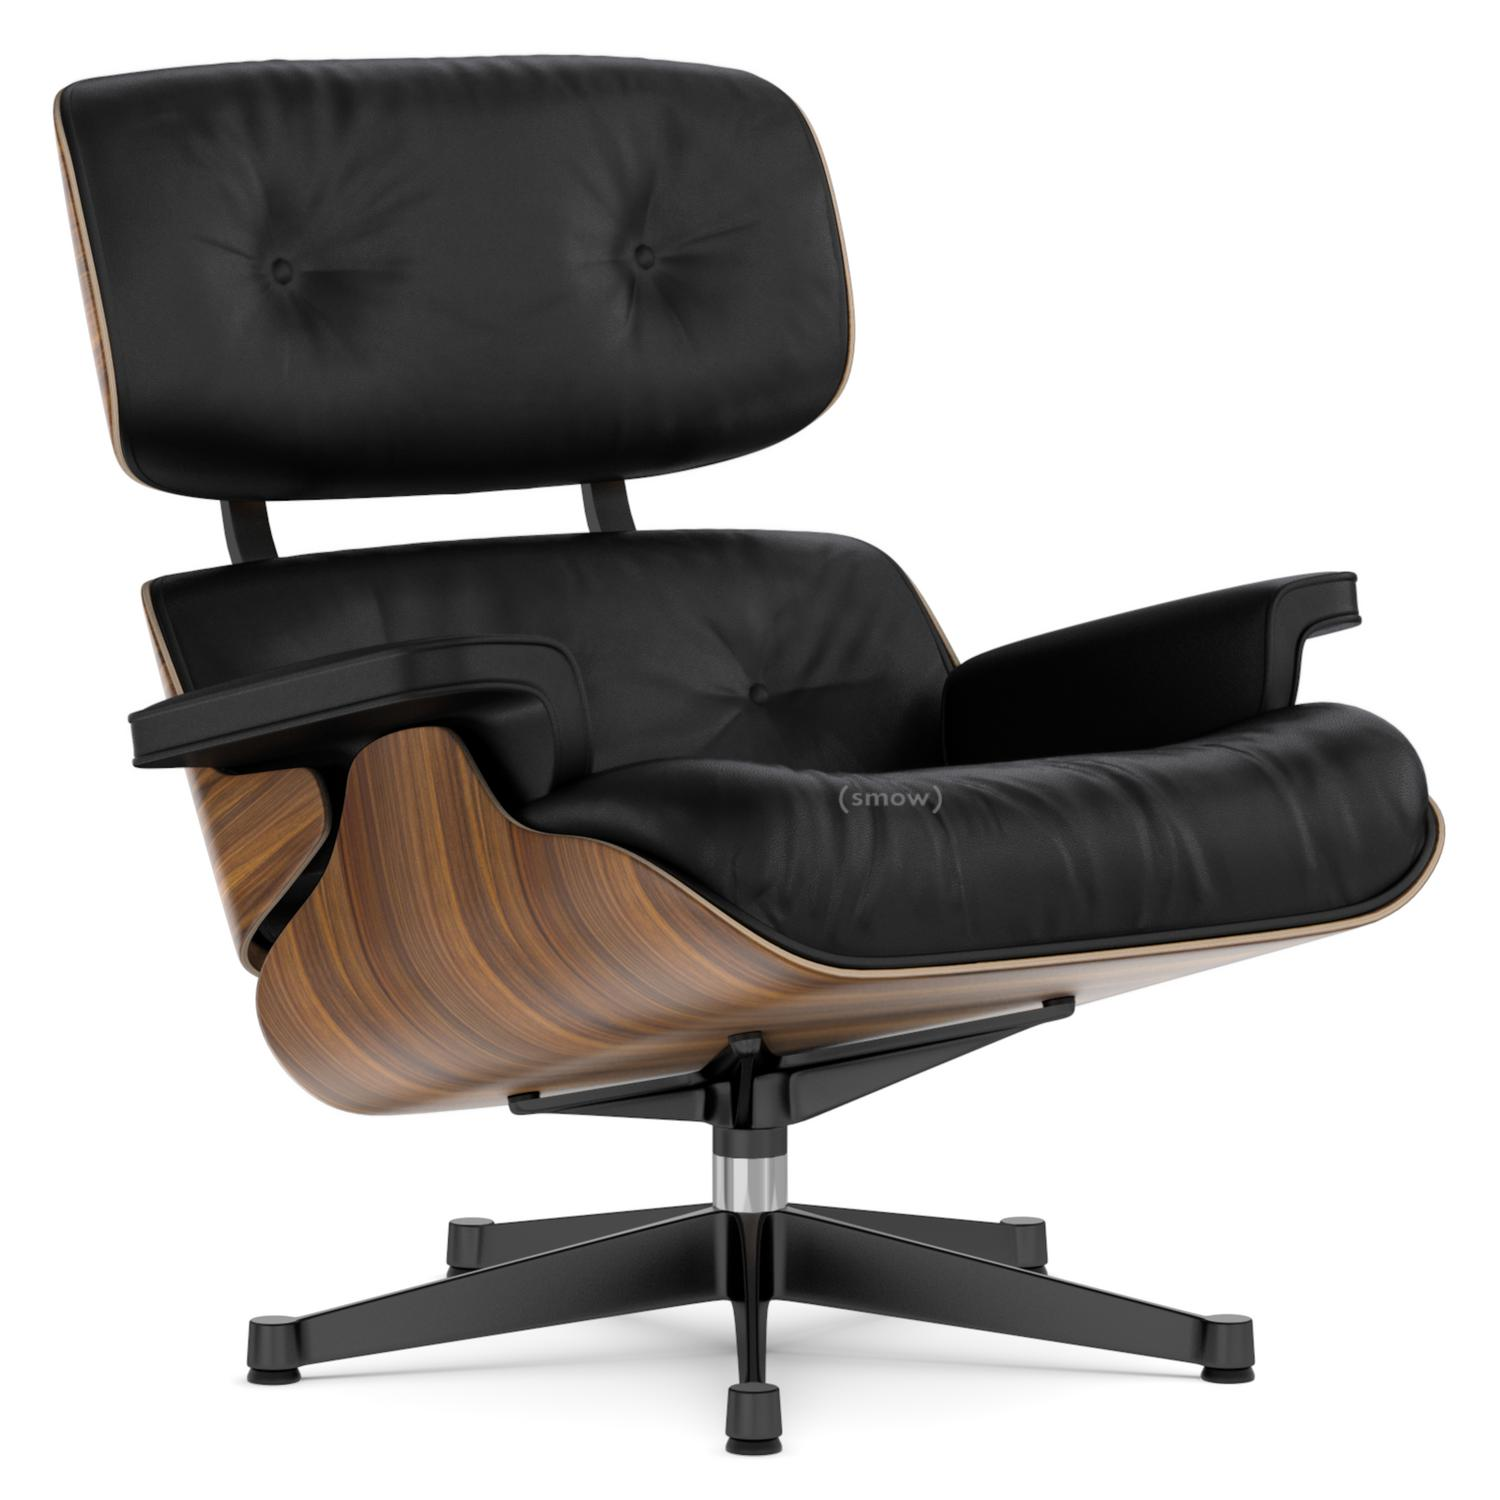 eames vitra lounge chair vitra eames lounge chair and. Black Bedroom Furniture Sets. Home Design Ideas